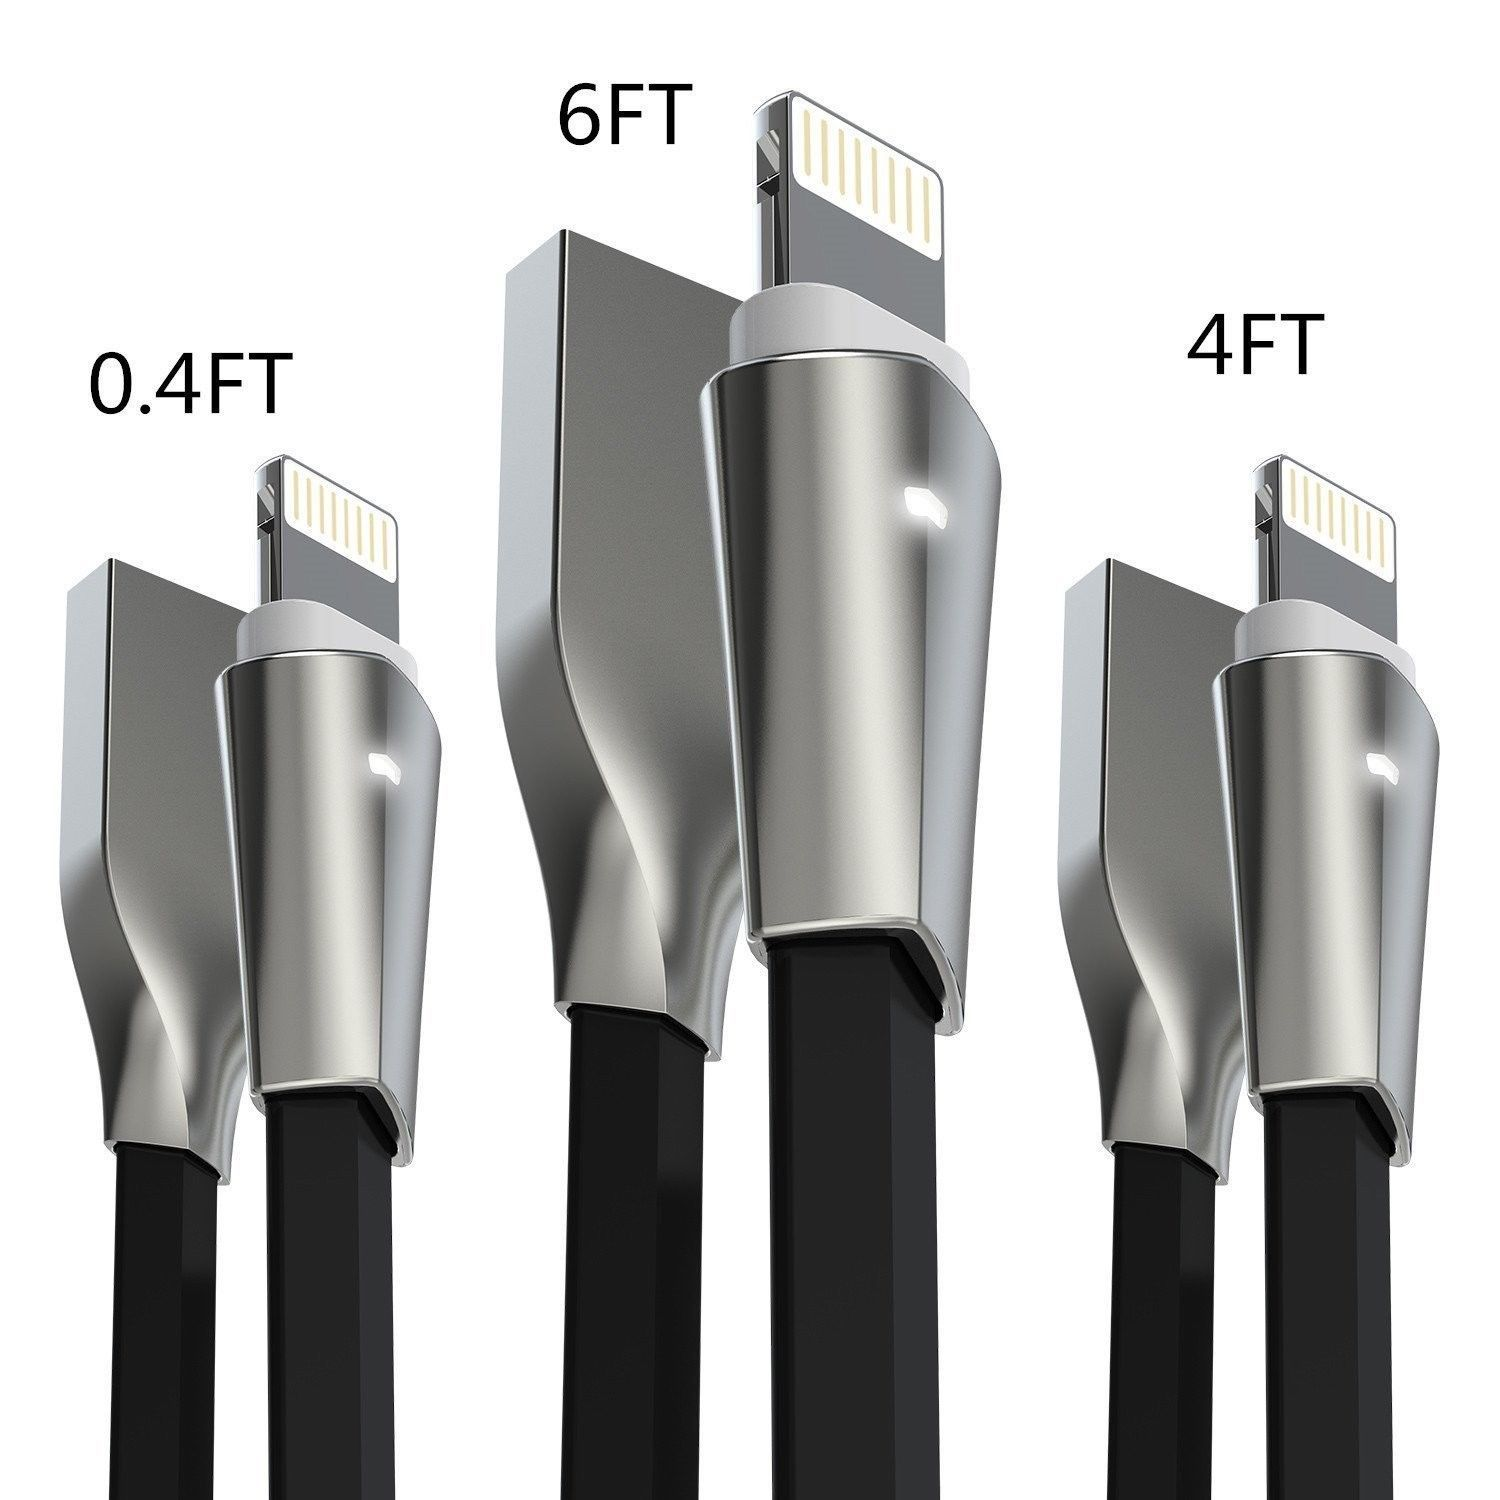 Aimus [3-Pack] Lightning Cable w/ LED Light [0.4FT+4FT+6FT] Zinc Alloyed Conn...